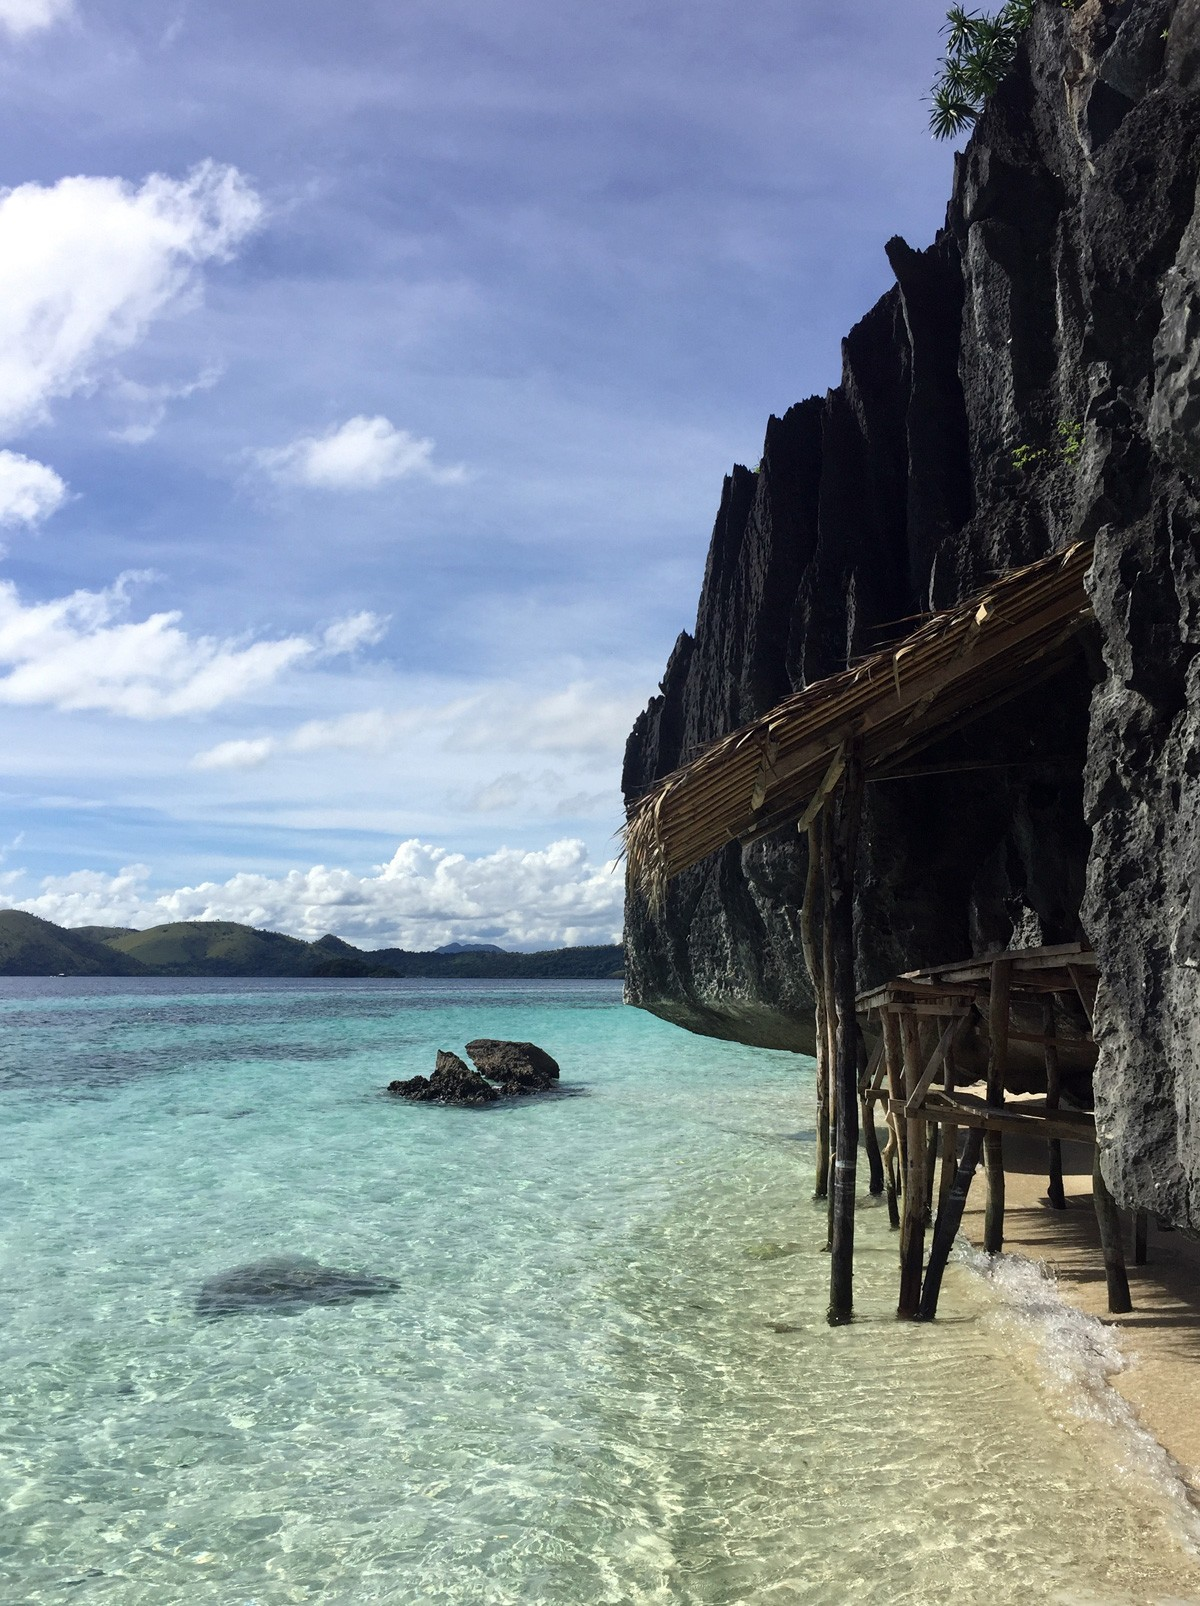 Clean water and perfect view - Banol beach, Palawan